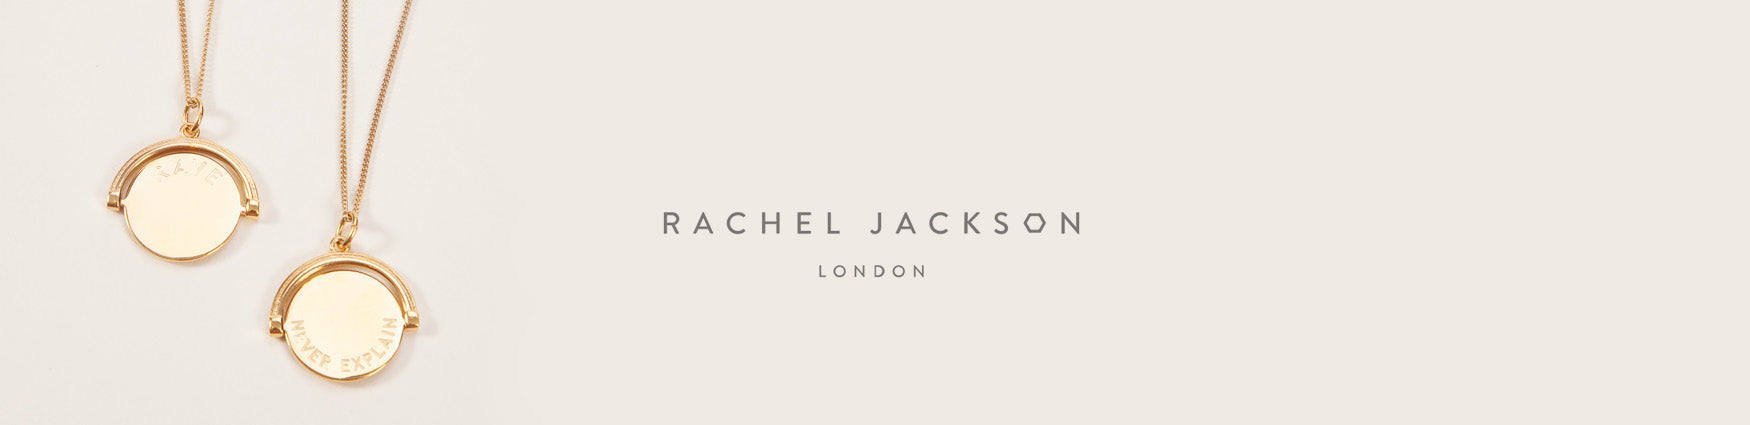 Rachel Jackson London spinning necklaces | Shop from Roo's Beach UK